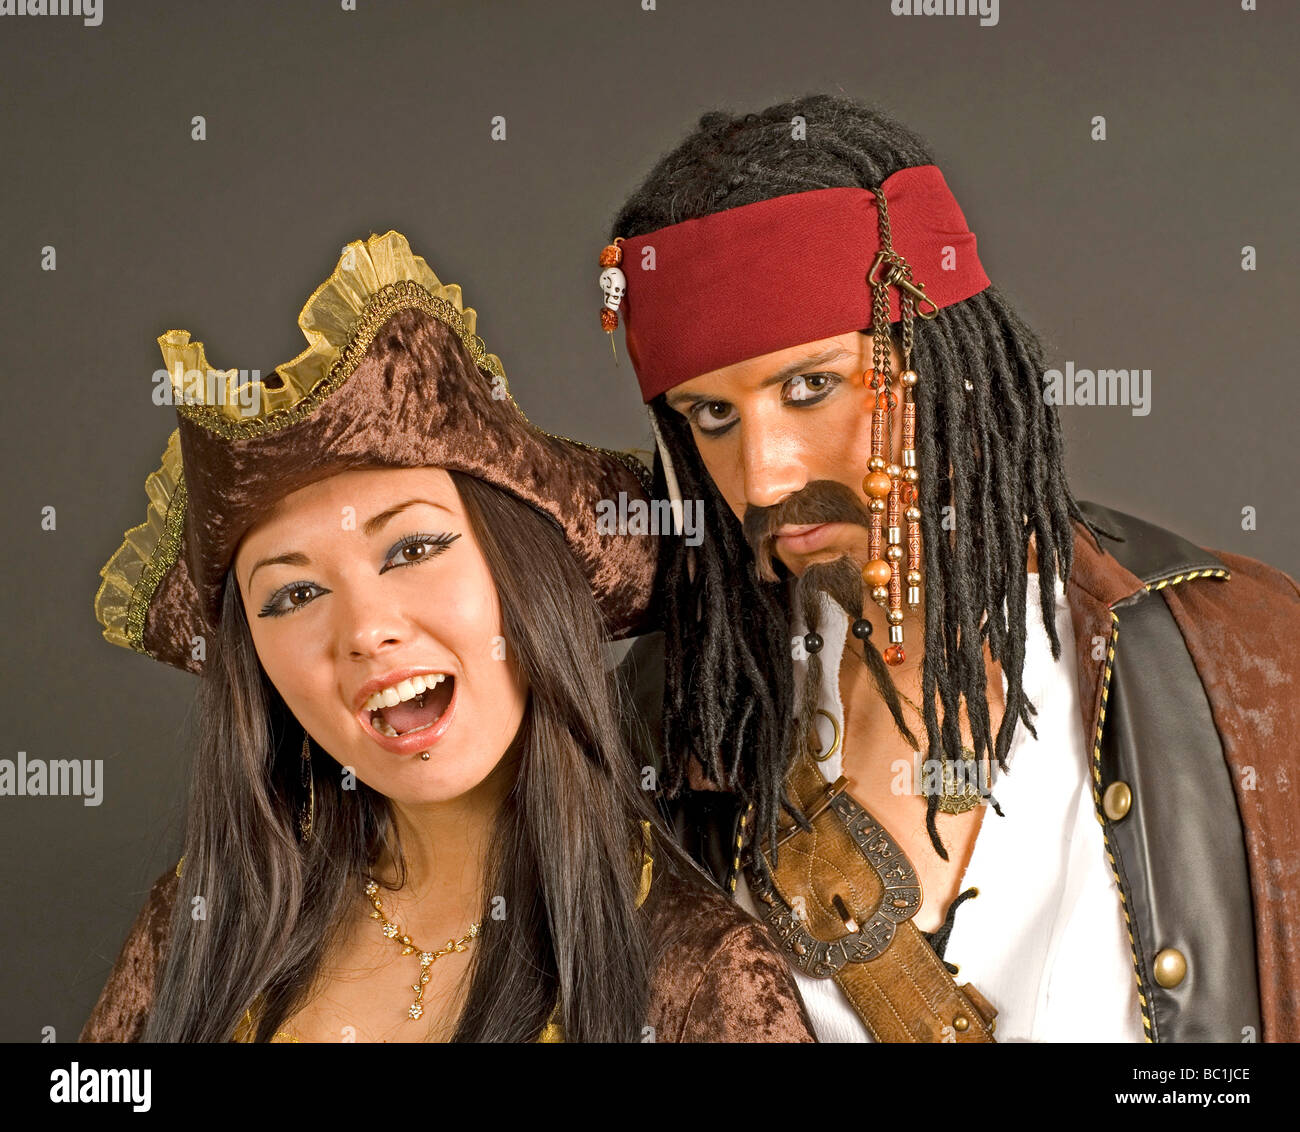 Pirate couple - Stock Image